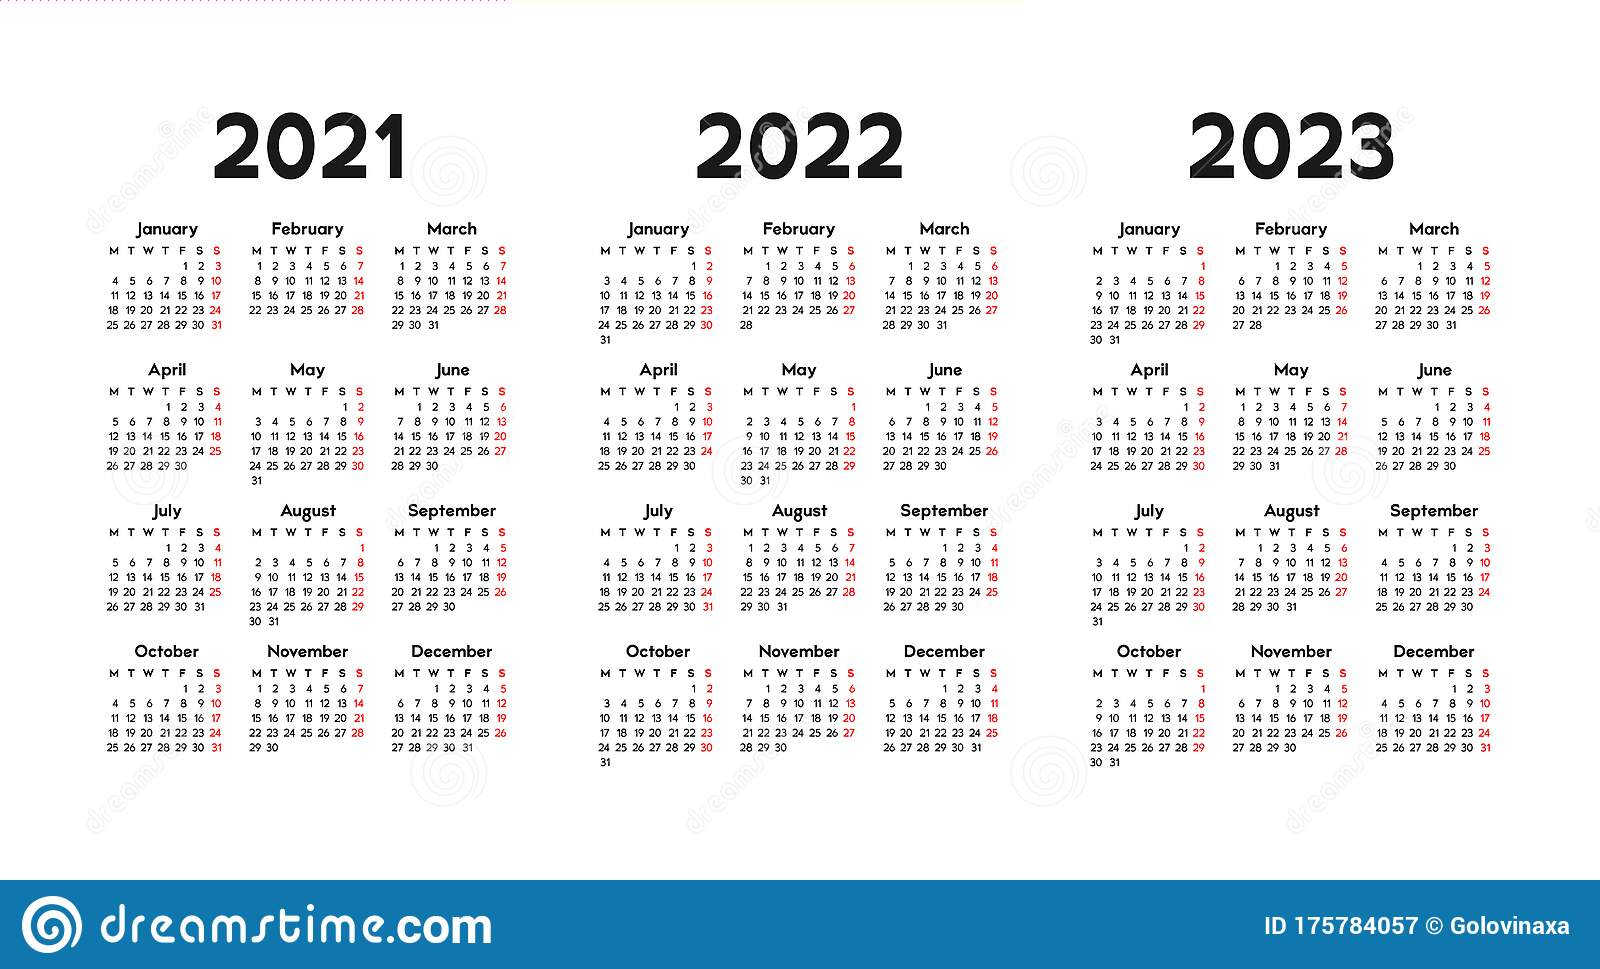 Cms Calendar 2022 2023.2 0 2 1 2 0 2 2 C A L E N D A R W I T H W E E K S Zonealarm Results